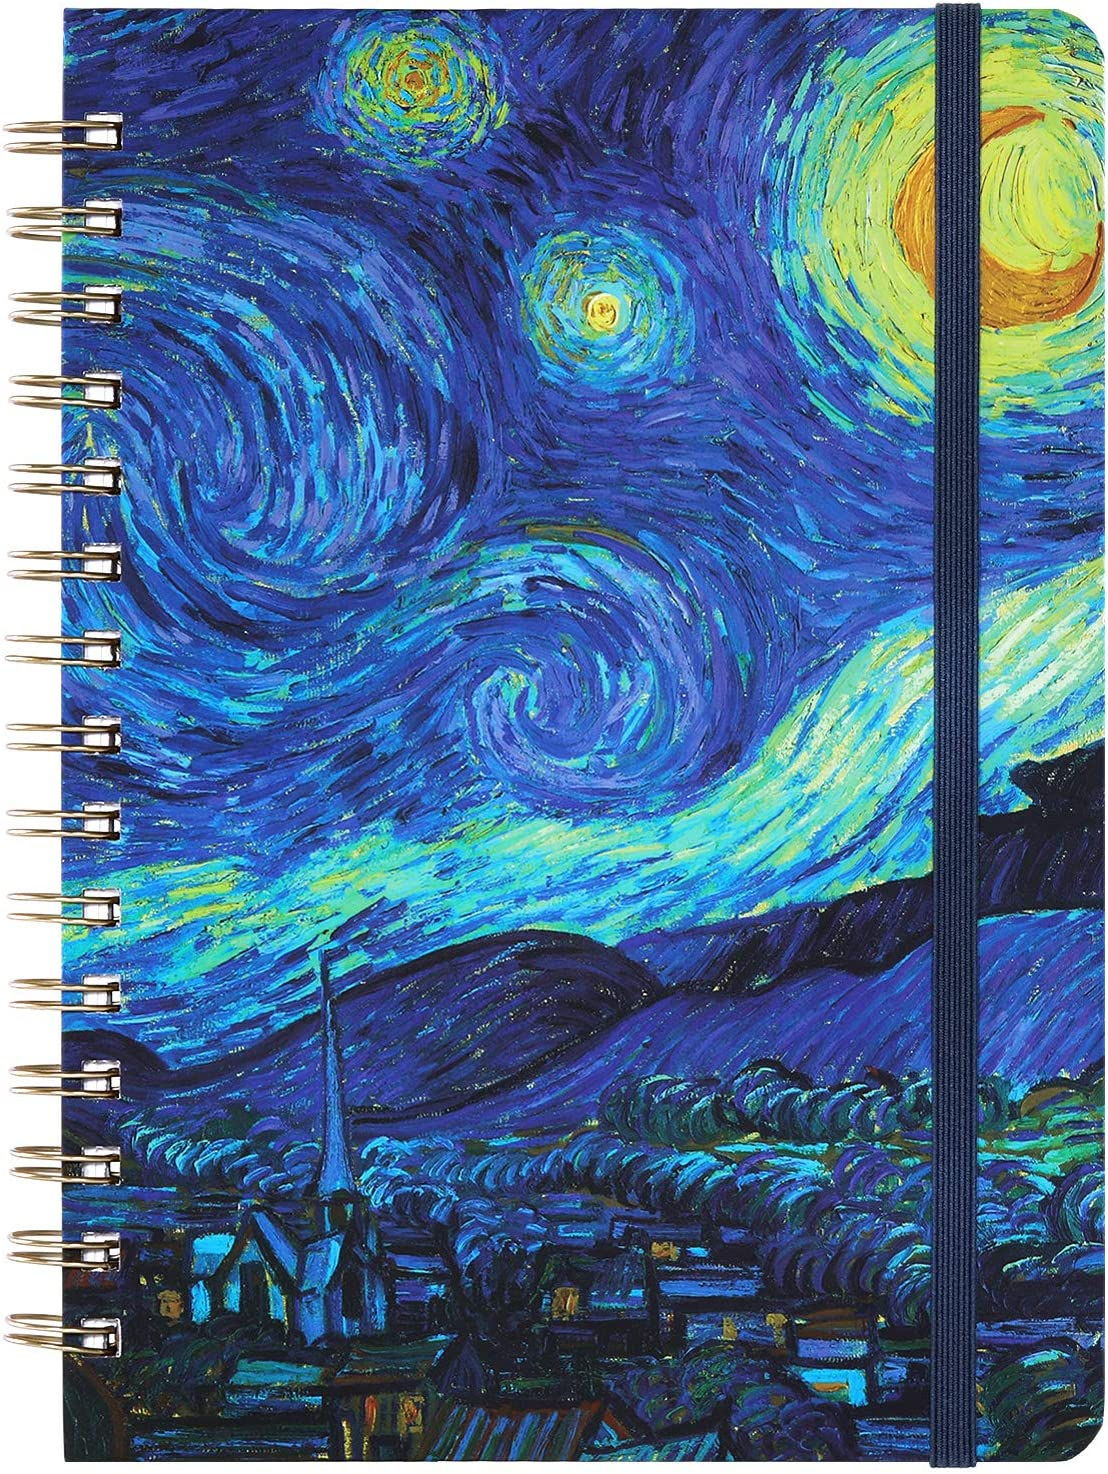 Ruled Notebook/Journal - Lined Journal with Hardcover, 8.4